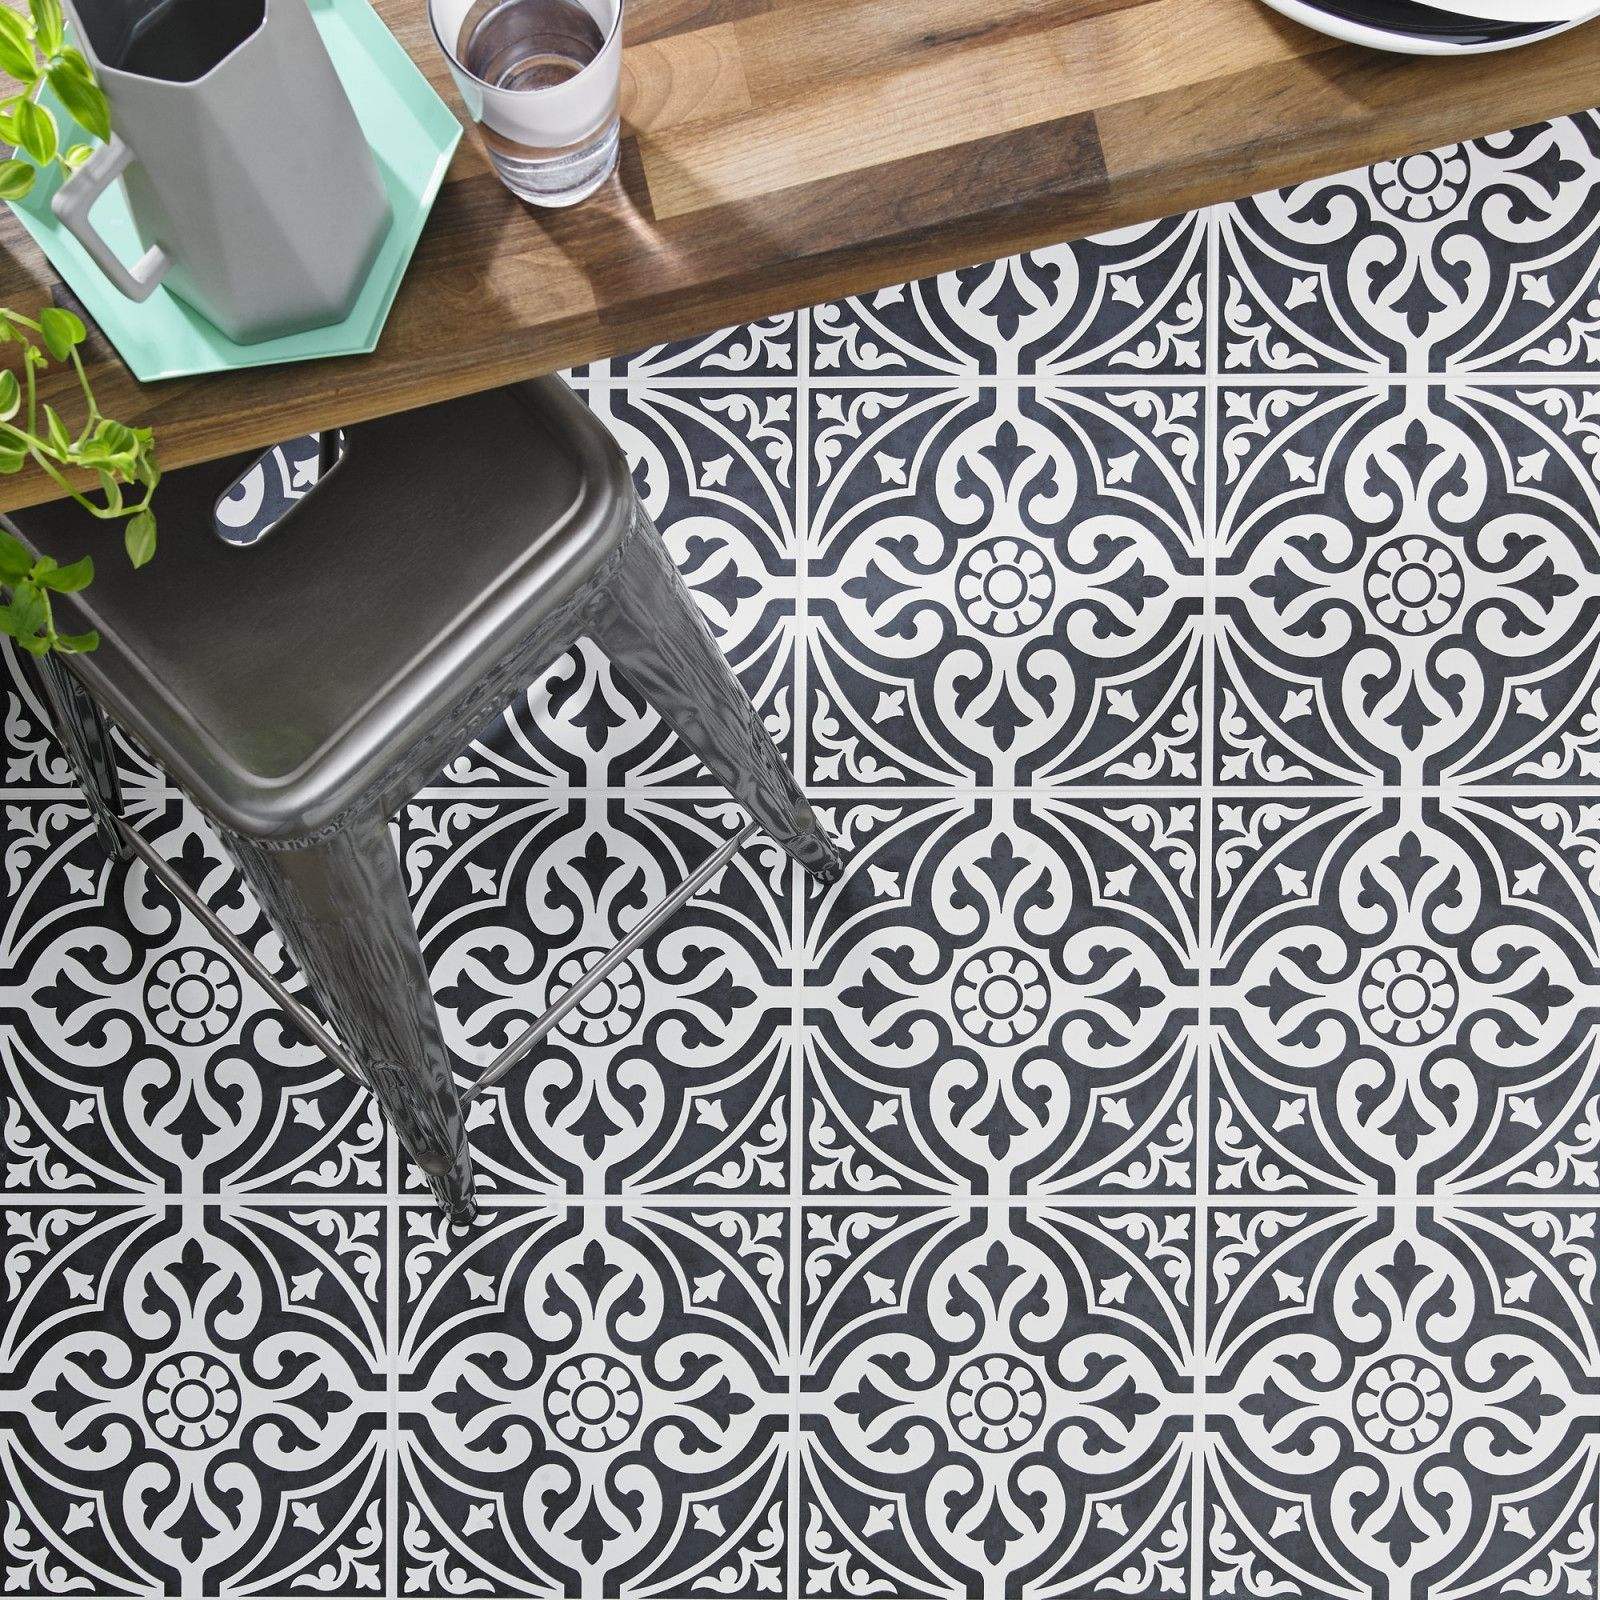 A Traditional Looking Black Patterned Floor Tile Designed With A